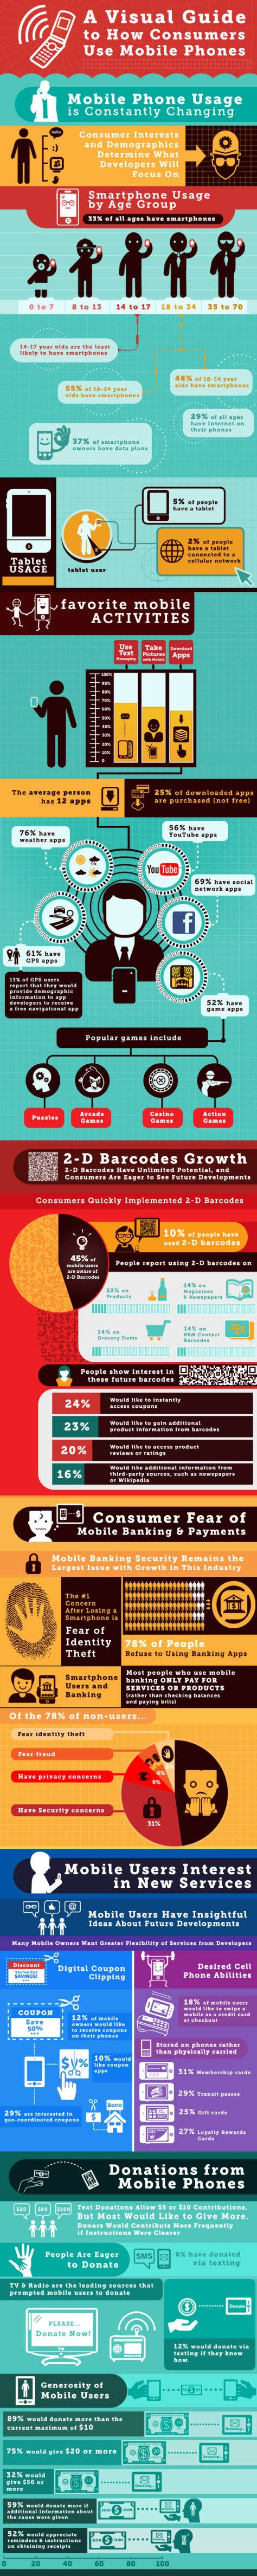 a-visual-guide-to-how-consumers-use-mobile-phones_5065a5e326cbc